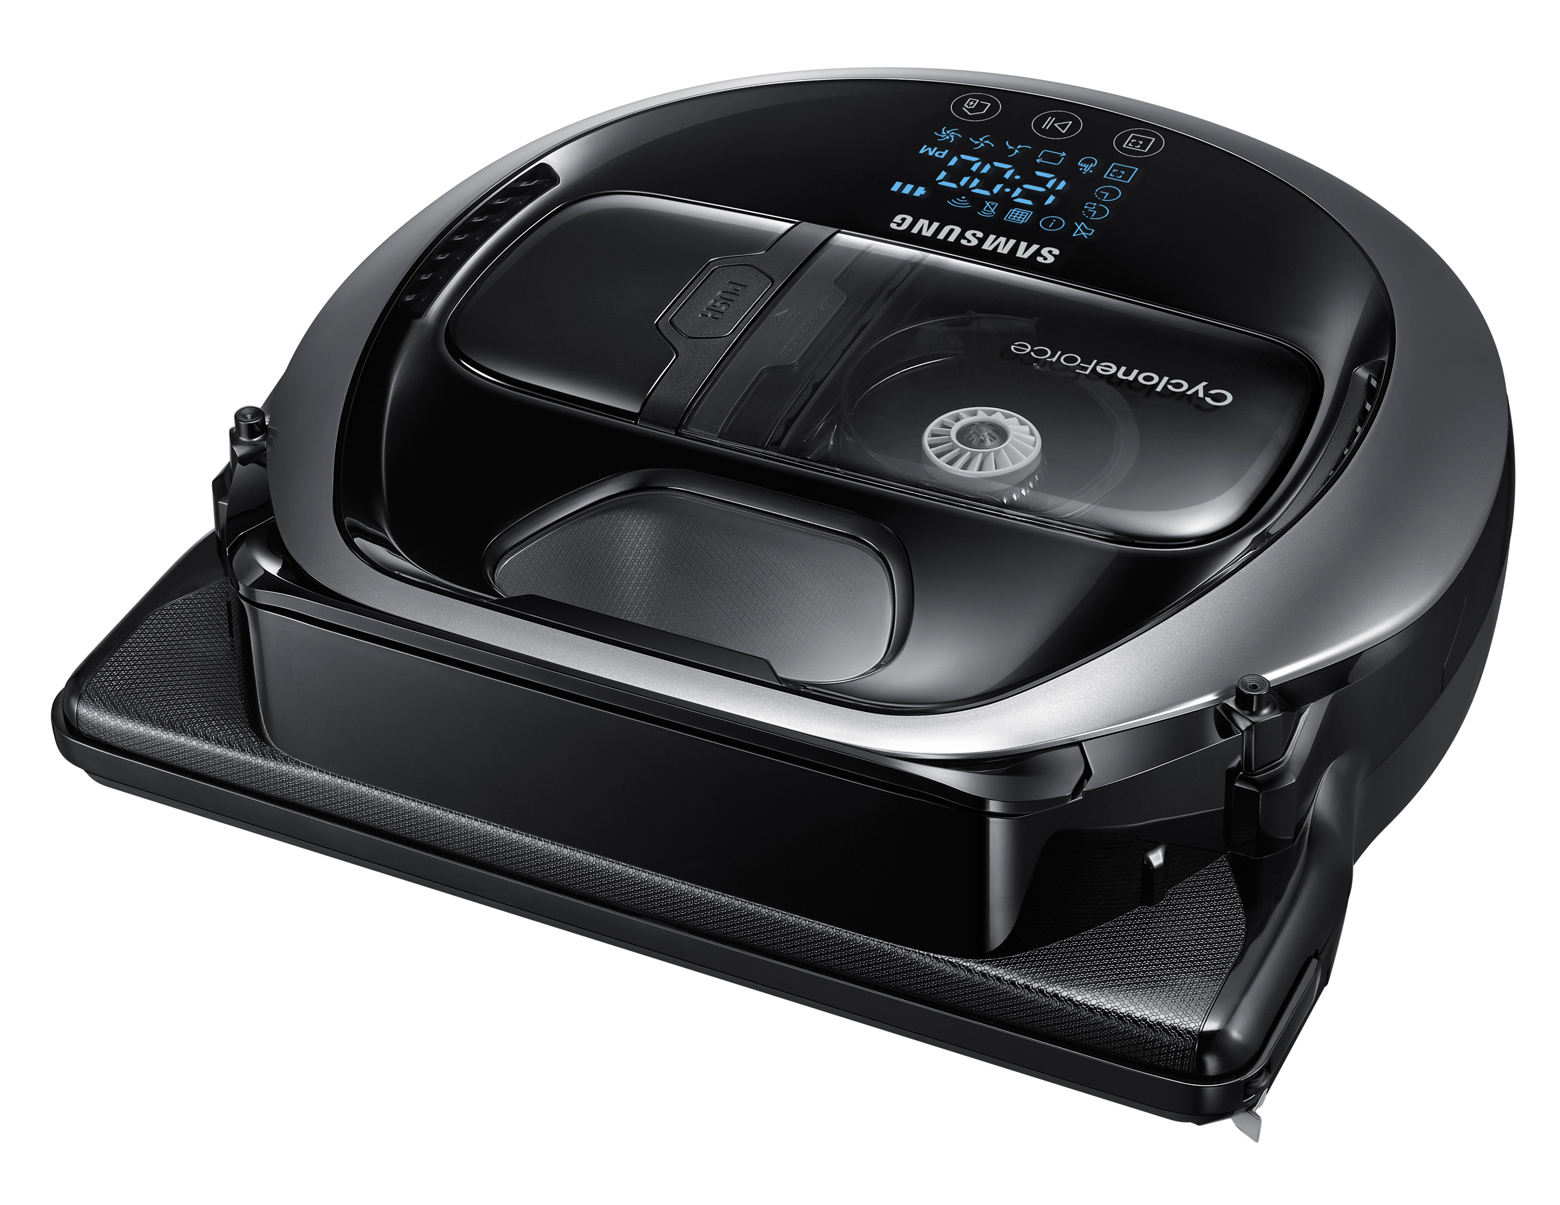 Samsung VR7000 robot vacuum will eat your dust, take commands from Alexa